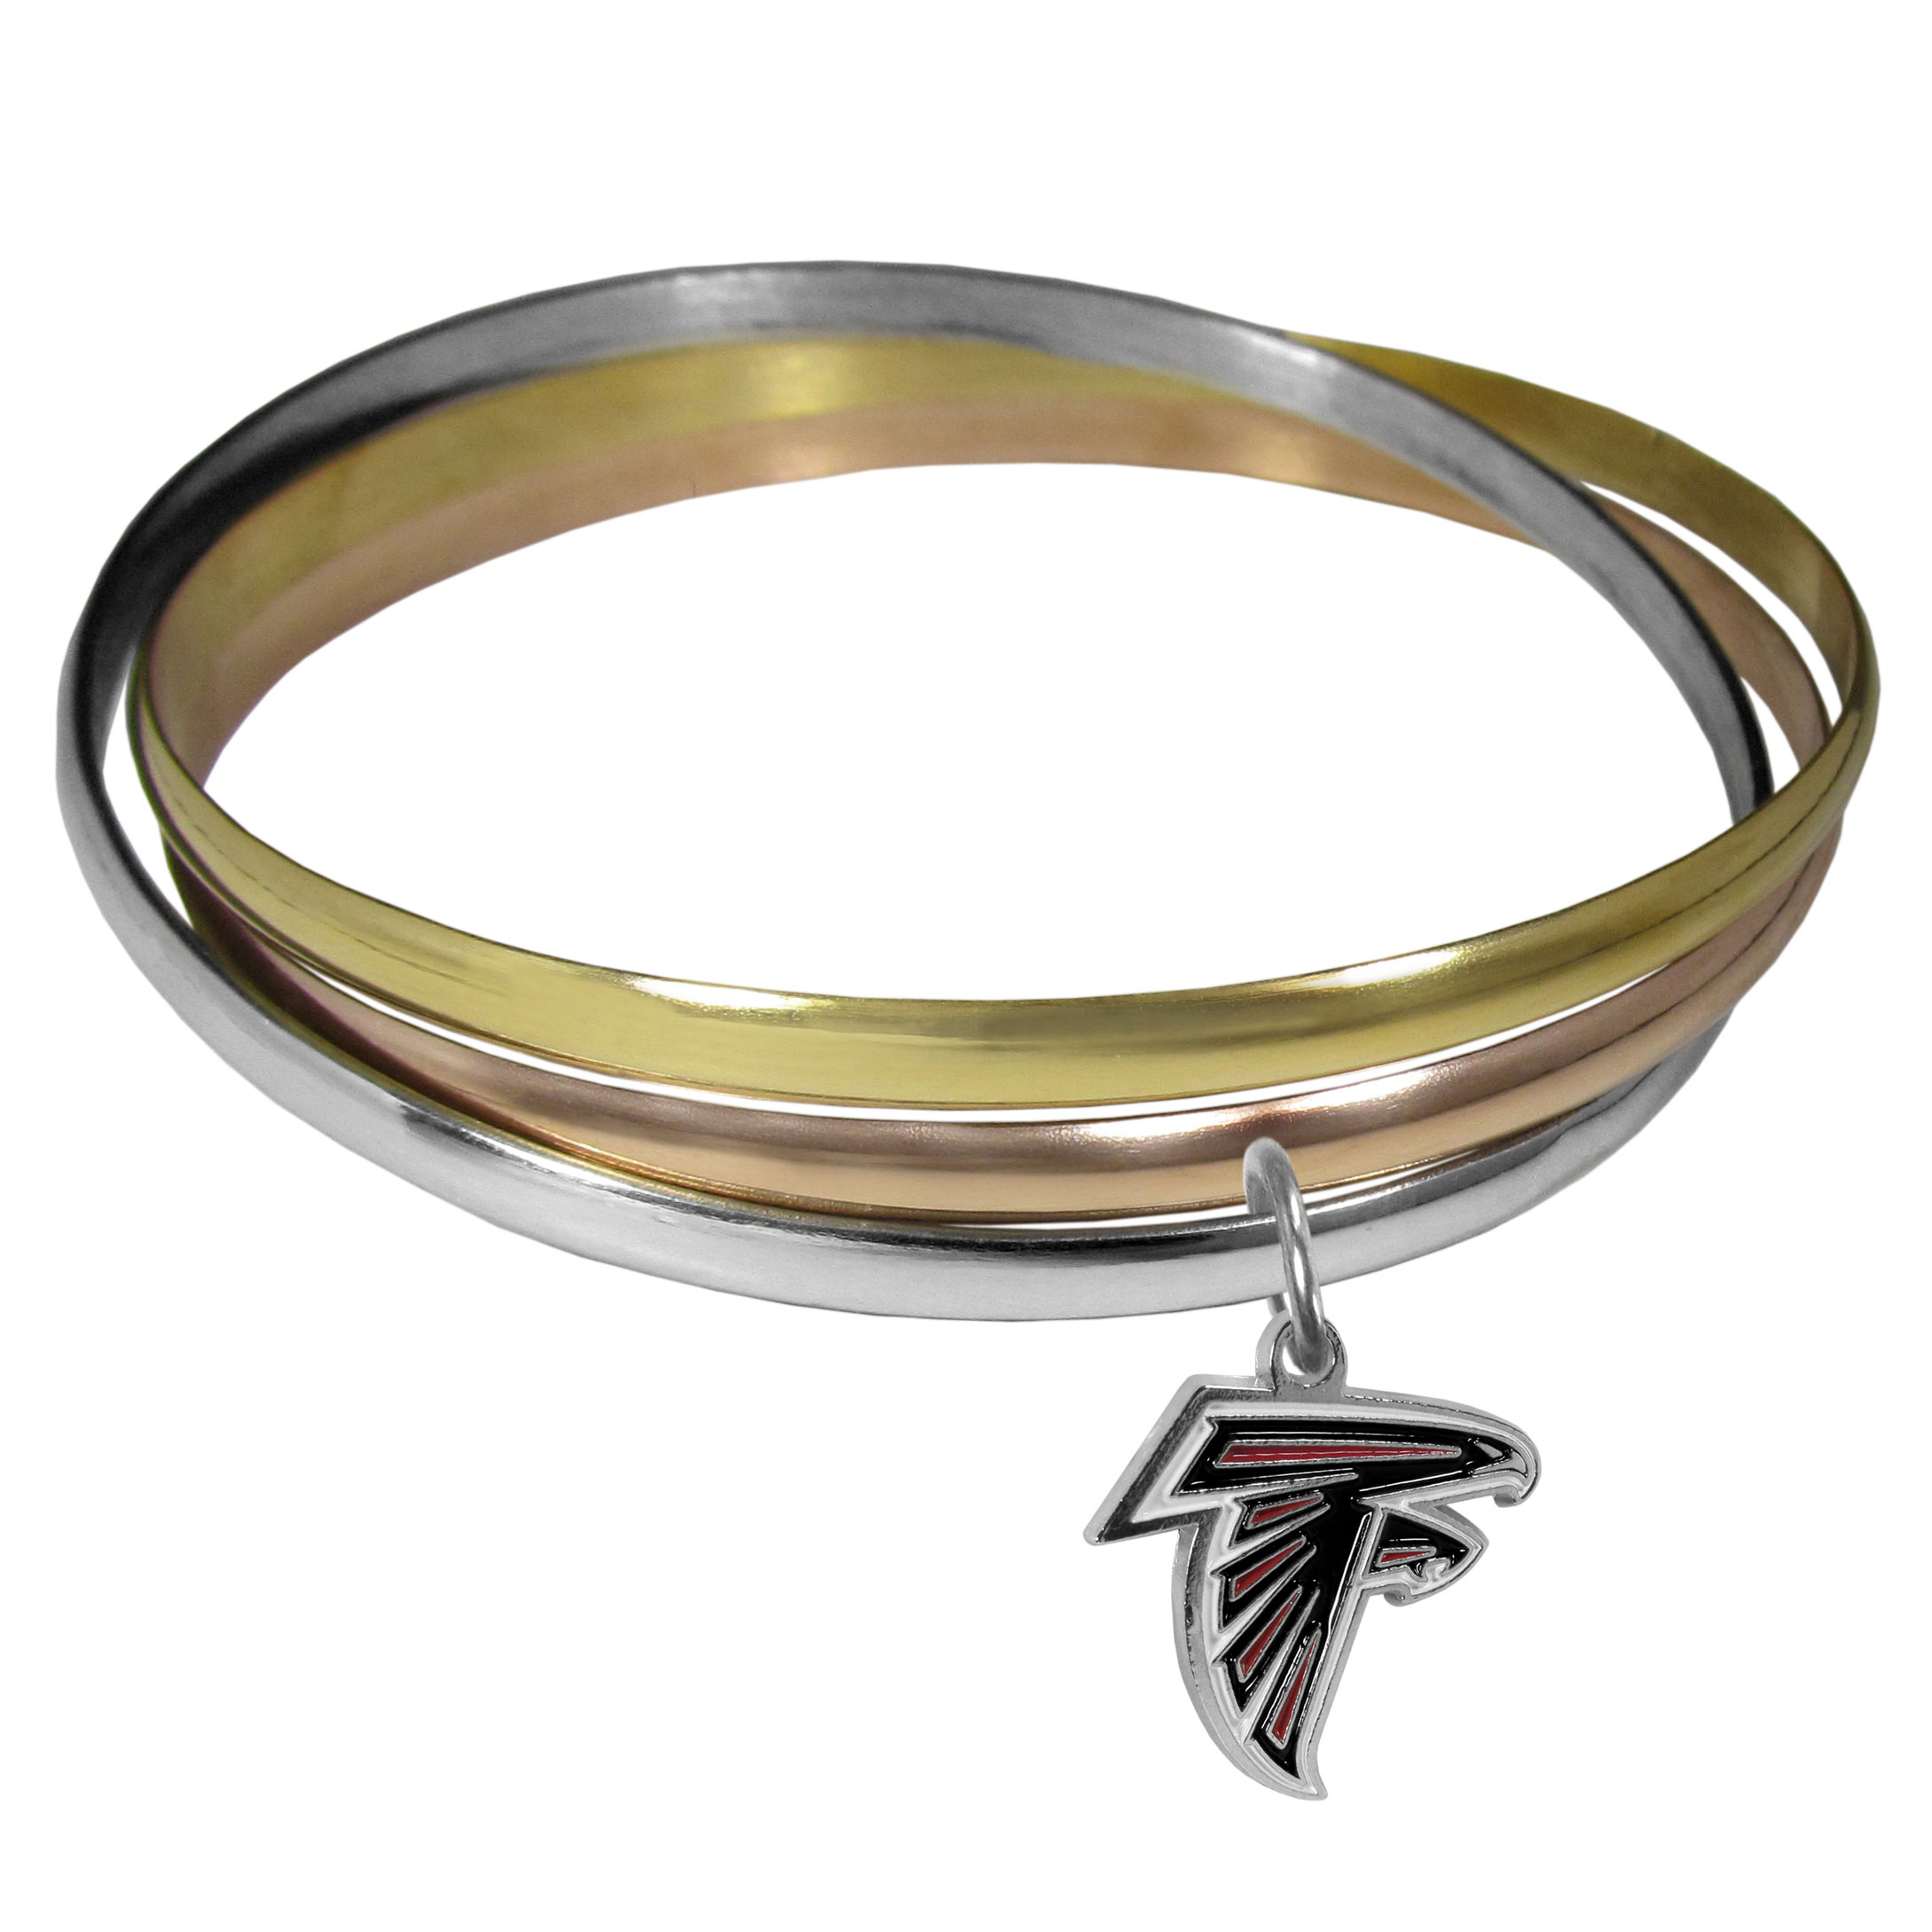 Atlanta Falcons Tri-color Bangle Bracelet - These beautiful bangles come in a interlocking style and feature a fully cast Atlanta Falcons charm with enameled team colors. The bracelet has a silver toned bangle, gold tone bangle and brass toned bangle.